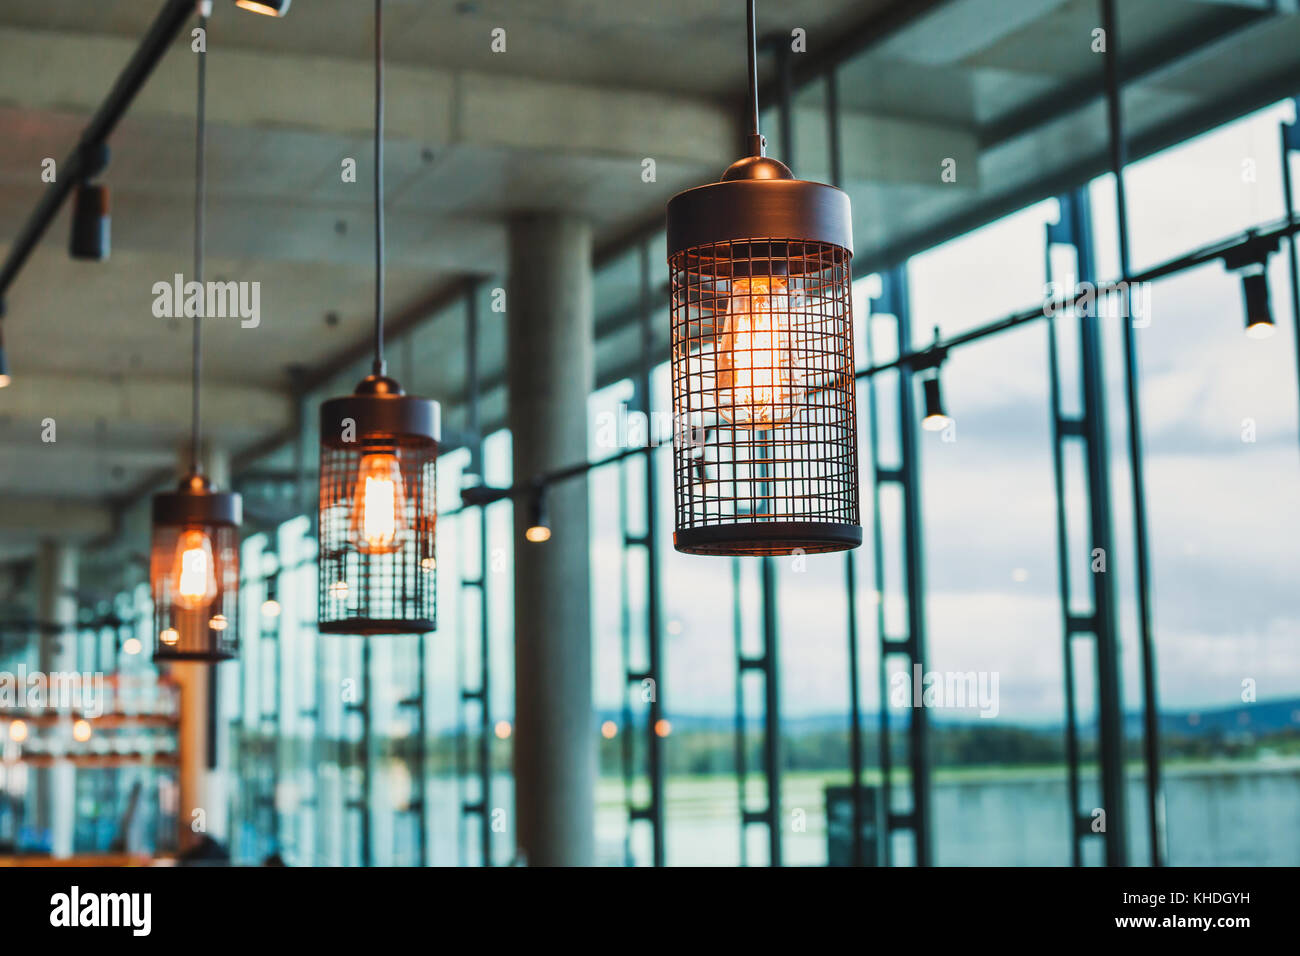 hanging lamps in abstract modern interior of cafe or restaurant, scandinavian design Stock Photo